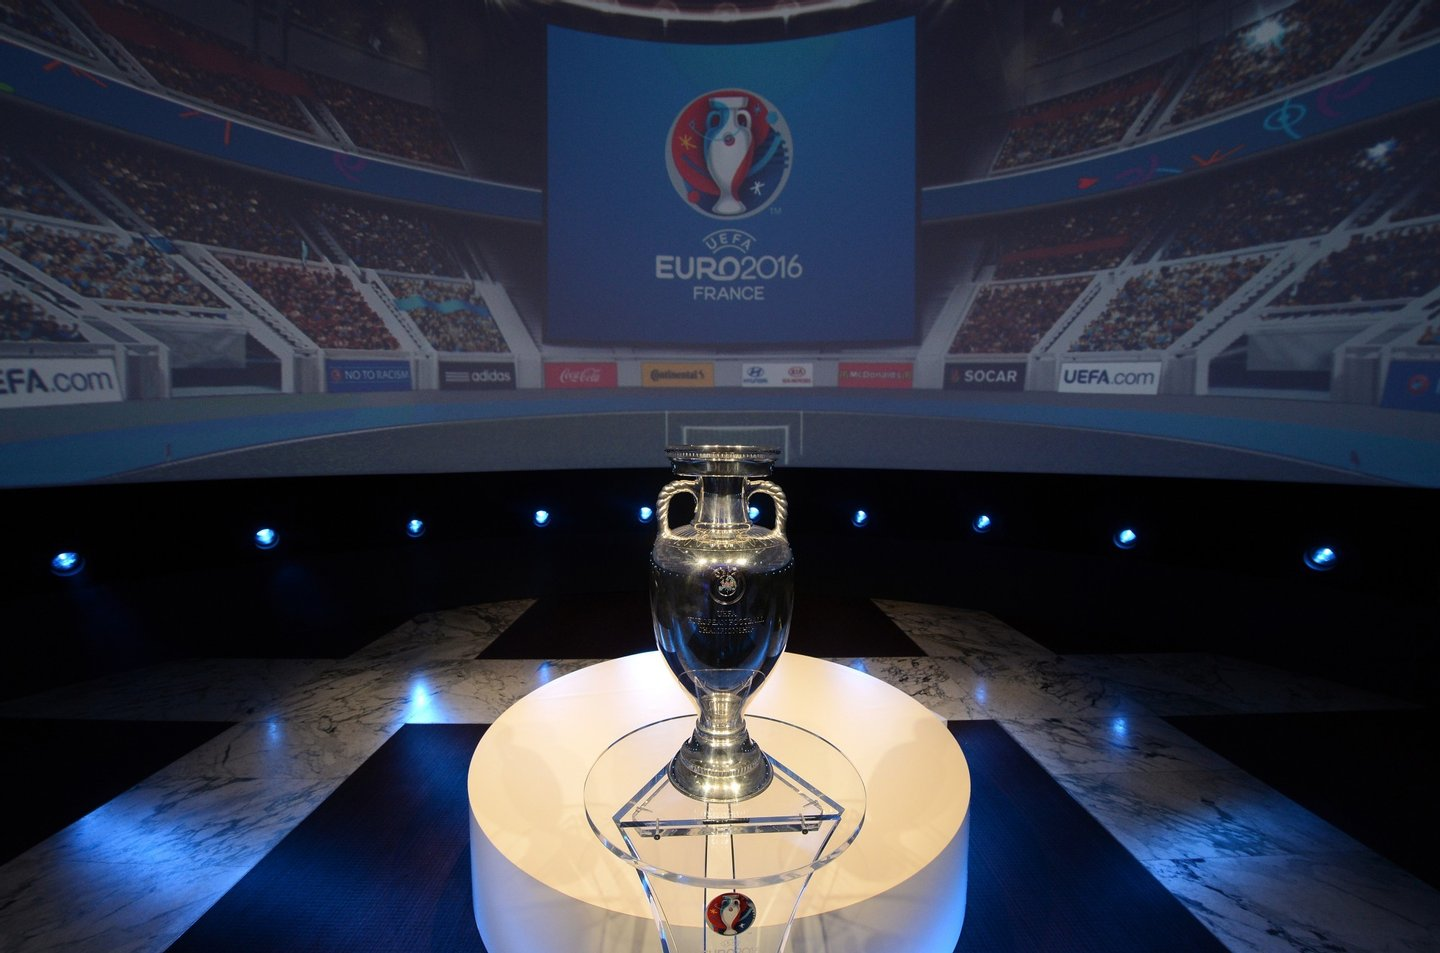 The Coupe Henri Delaunay, the trophy of the UEFA European Football Championship, is displayed during a press conference to unveil the Euro 2016 finals logo on June 26, 2013 in Paris. The Euro 2016 event will feature 24 countries for the first time, up from 16 in 2012, and France becomes the first country to stage the European Championship three times. AFP PHOTO / FRANCK FIFE (Photo credit should read FRANCK FIFE/AFP/Getty Images)